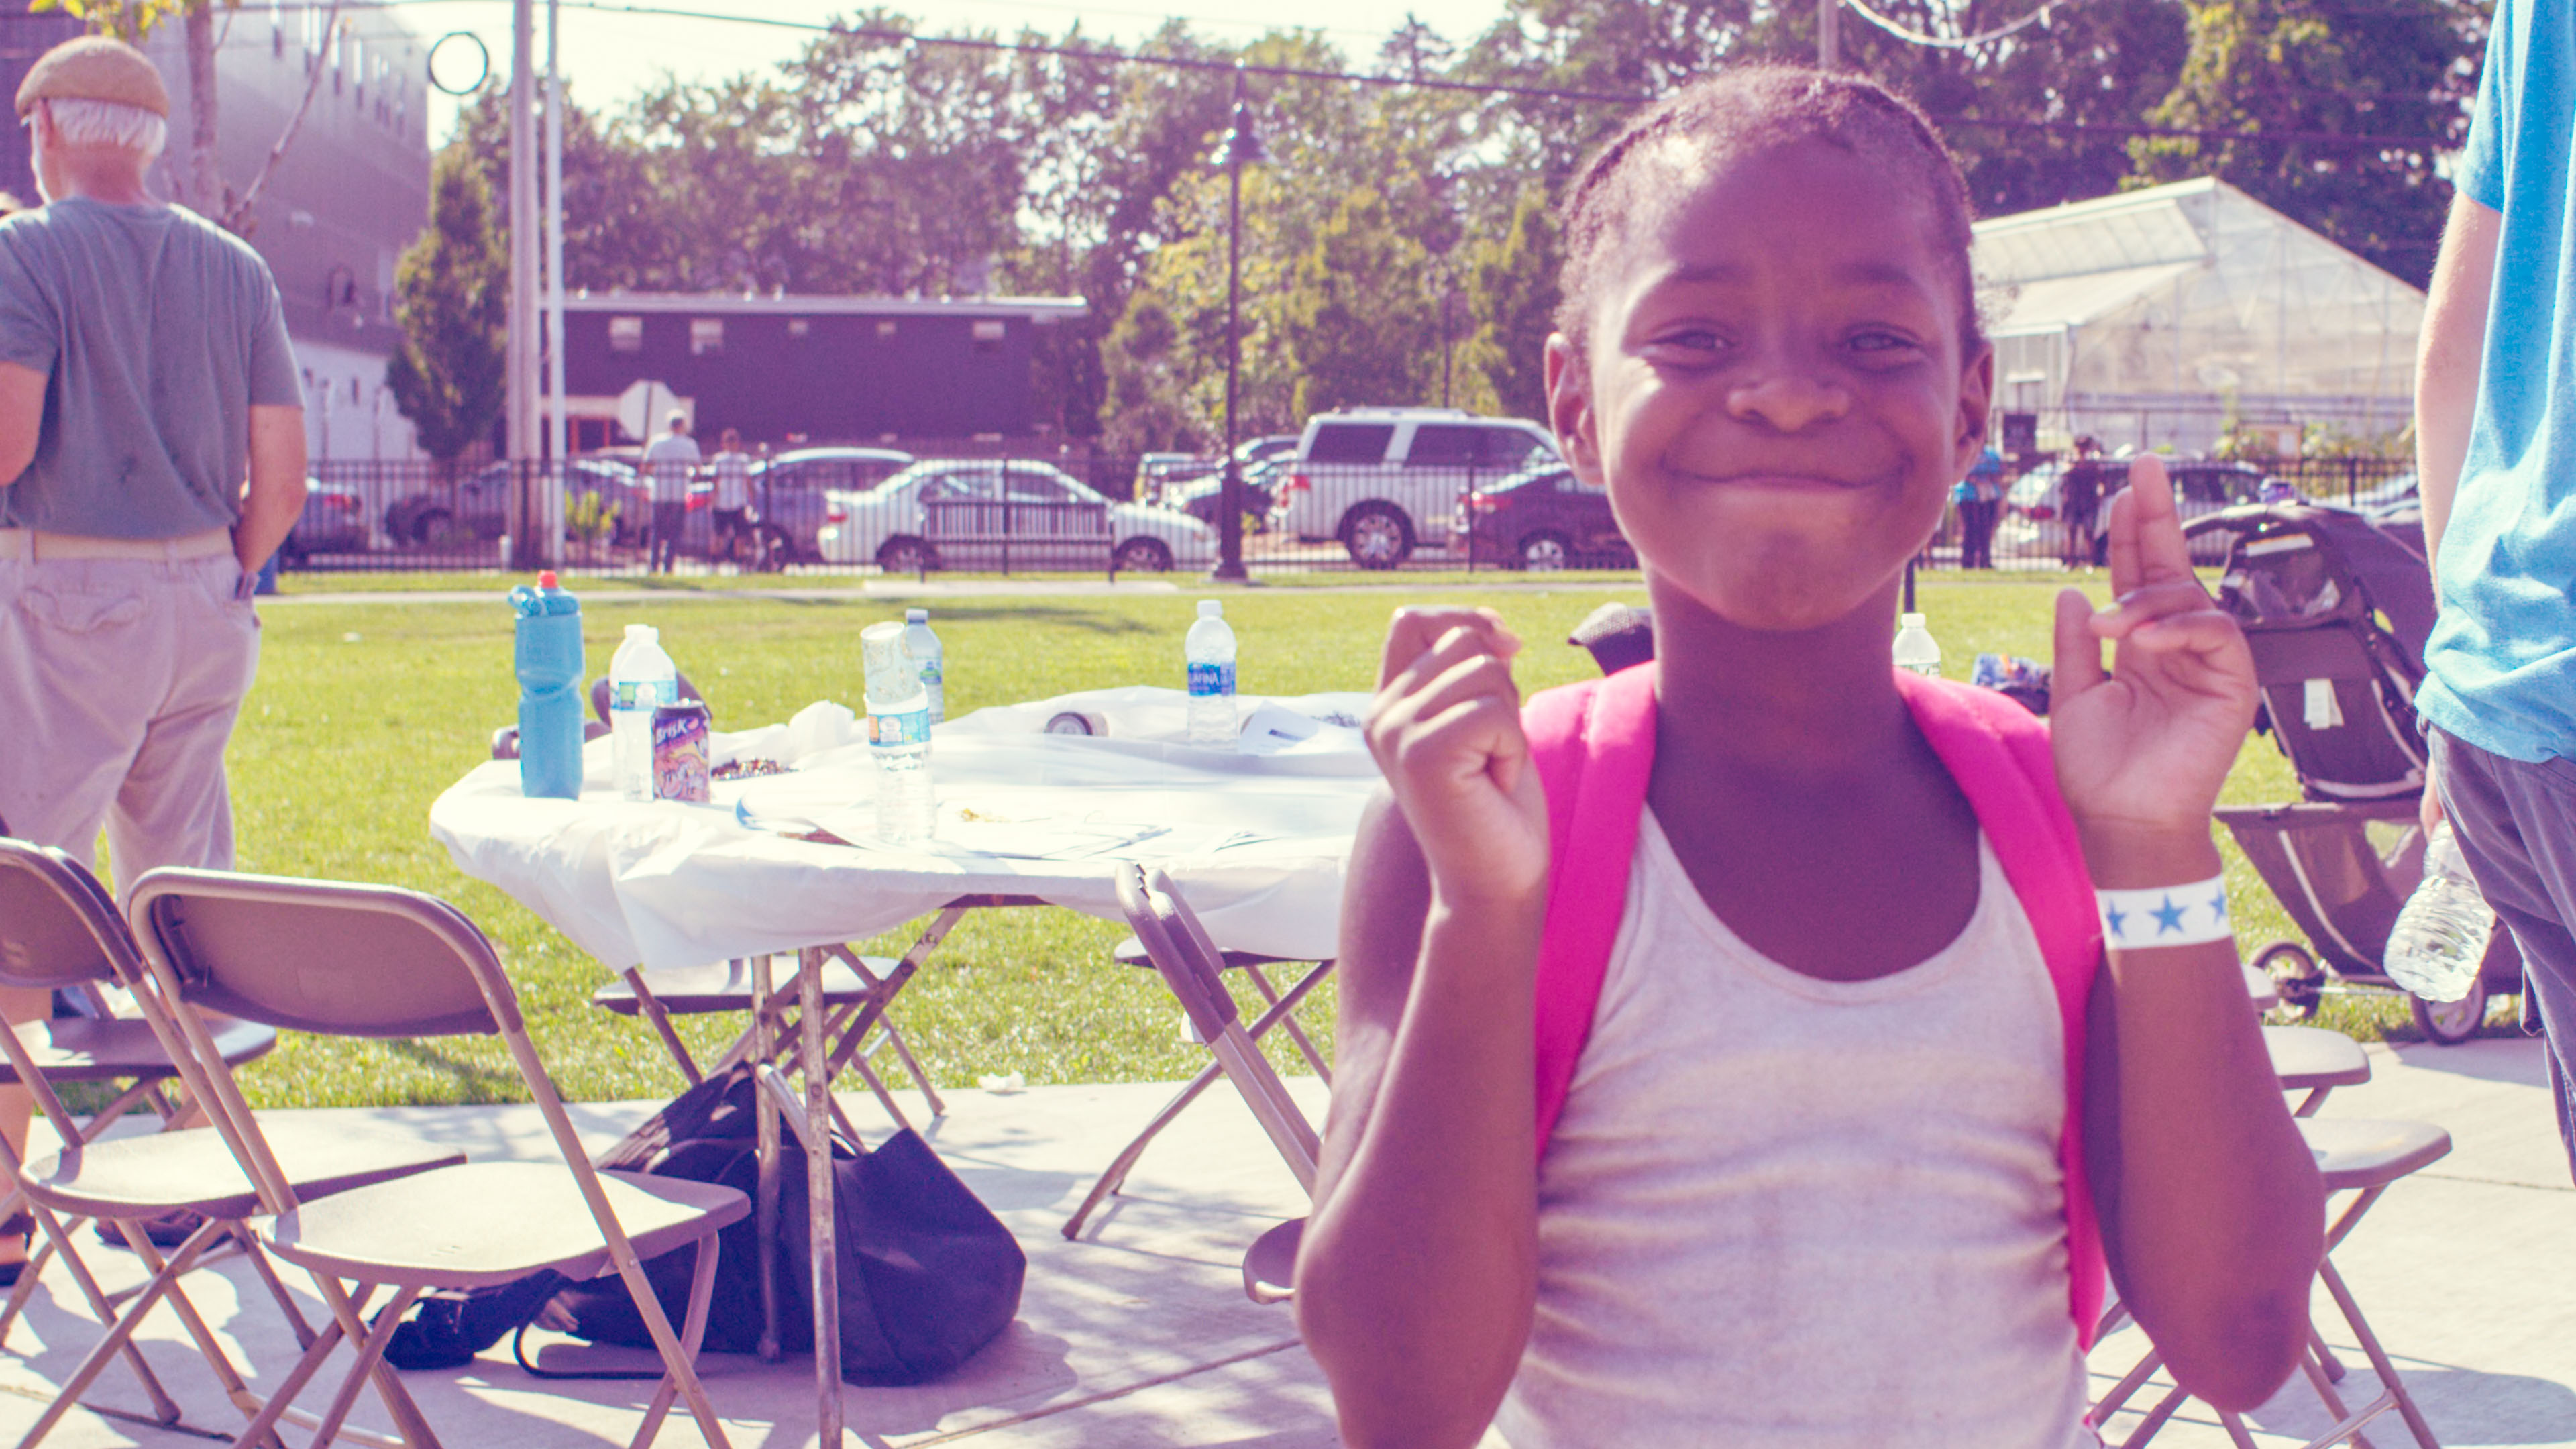 Blue Bishop Community Outreach Day. Credit: Cerrone Photo